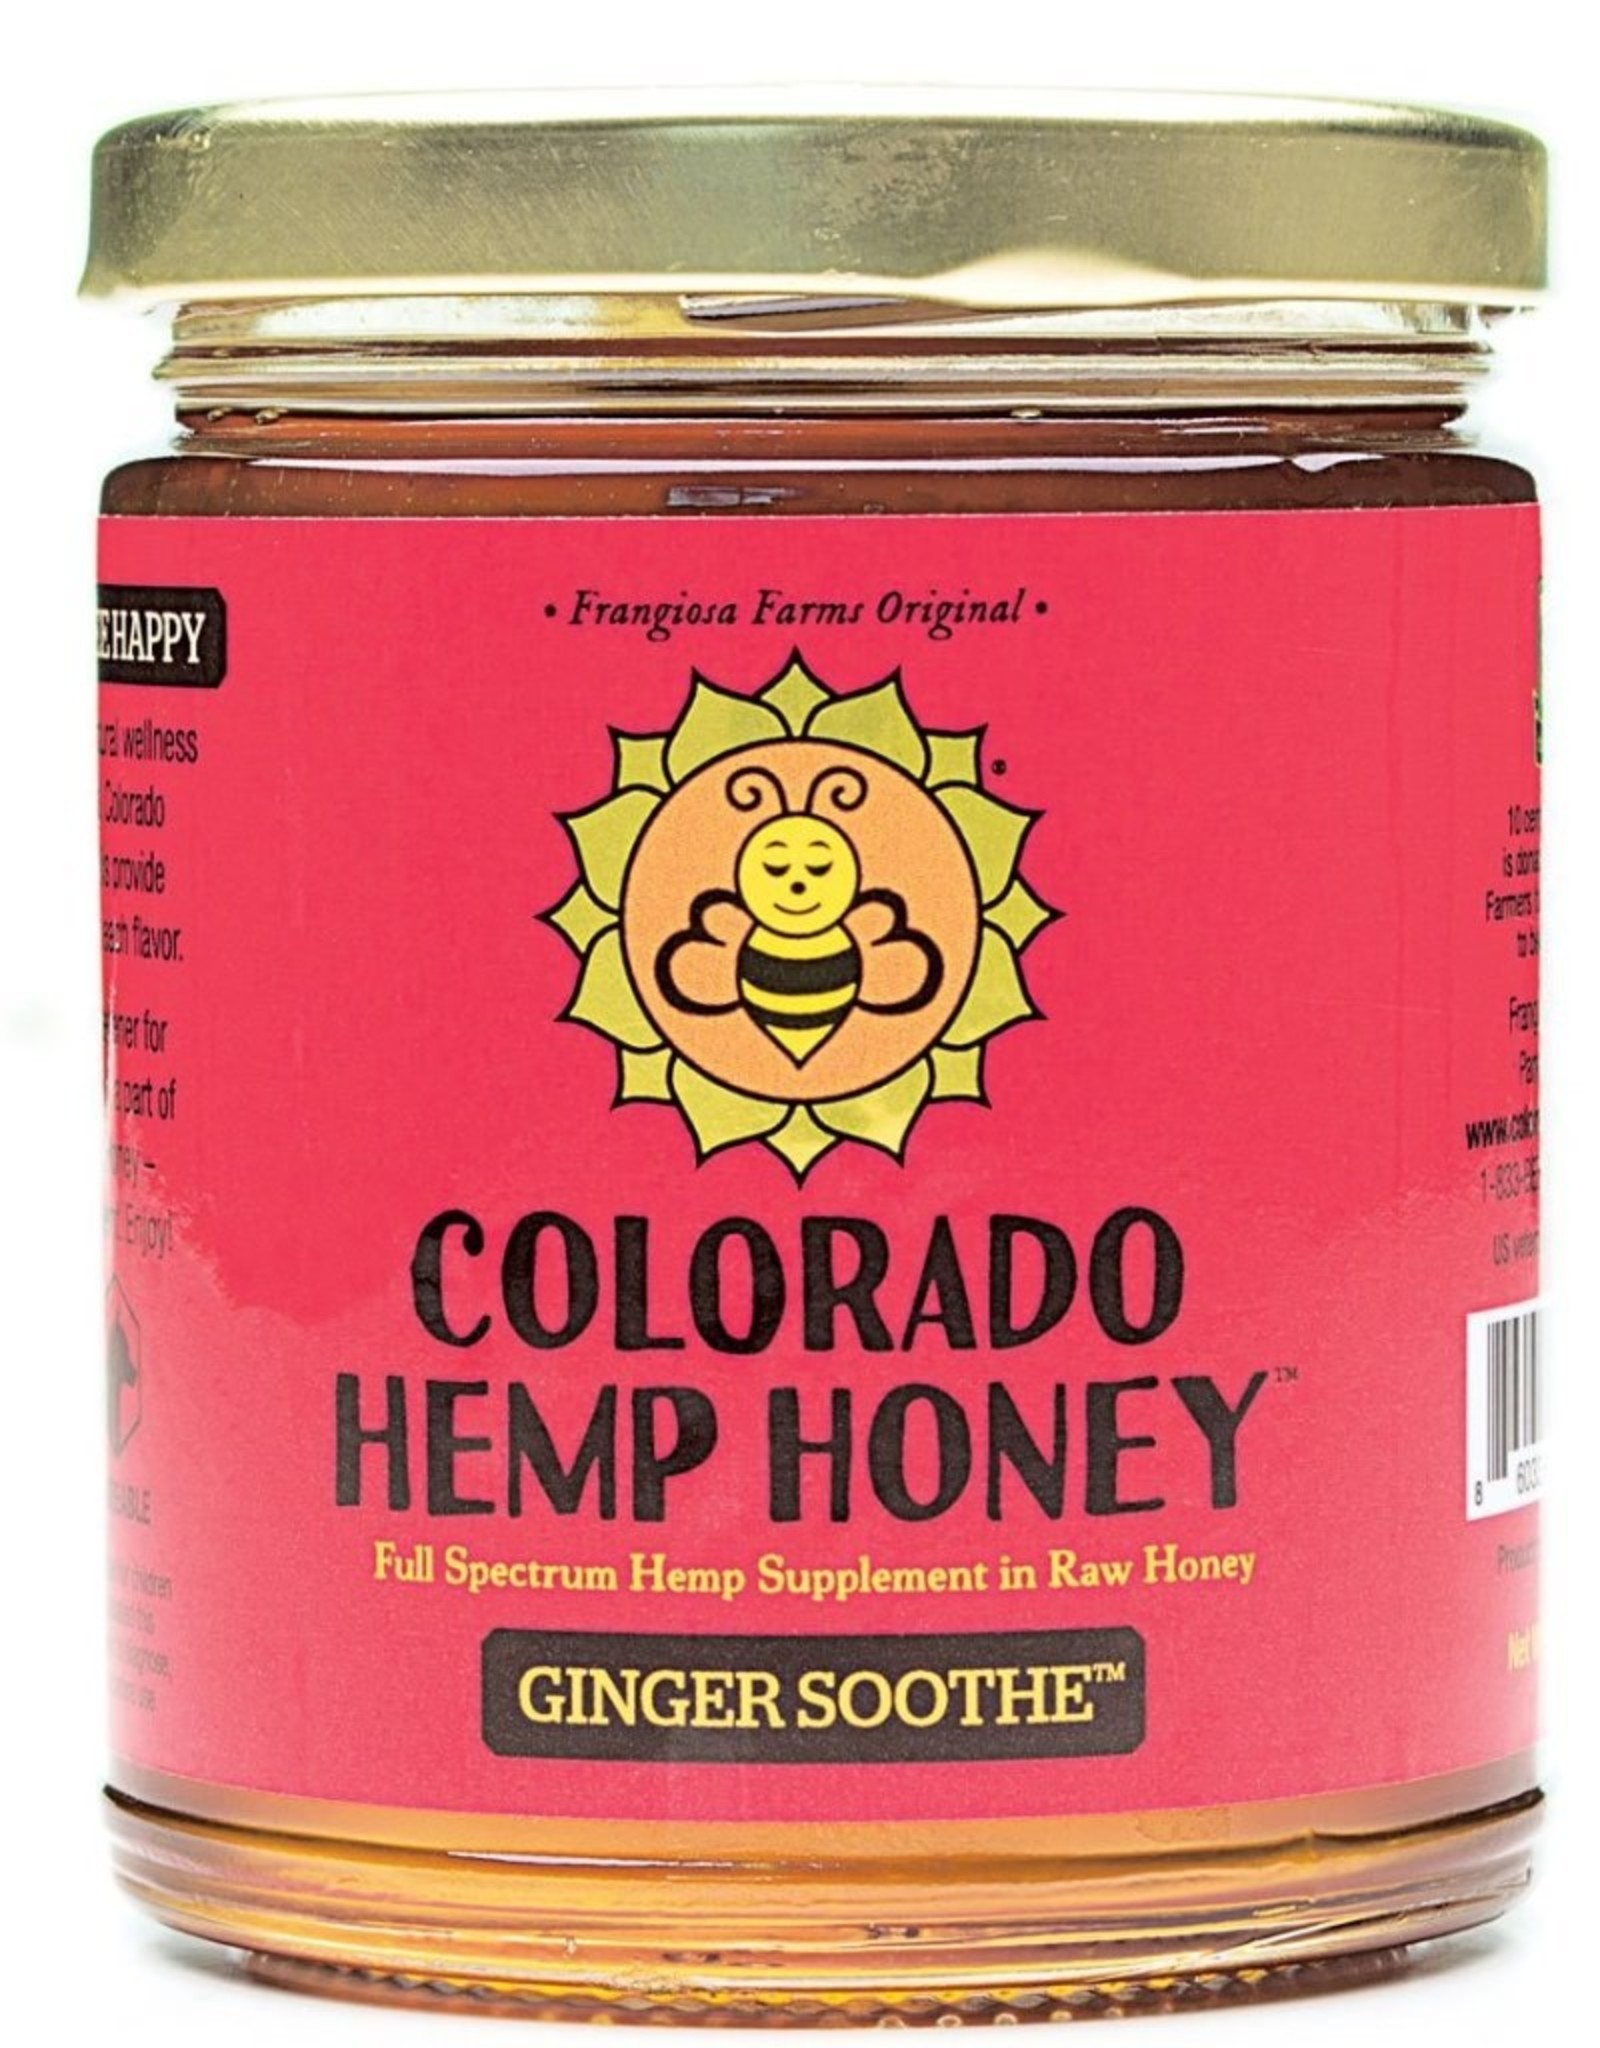 Colorado Hemp Honey Ginger Soothe Jar - 6oz